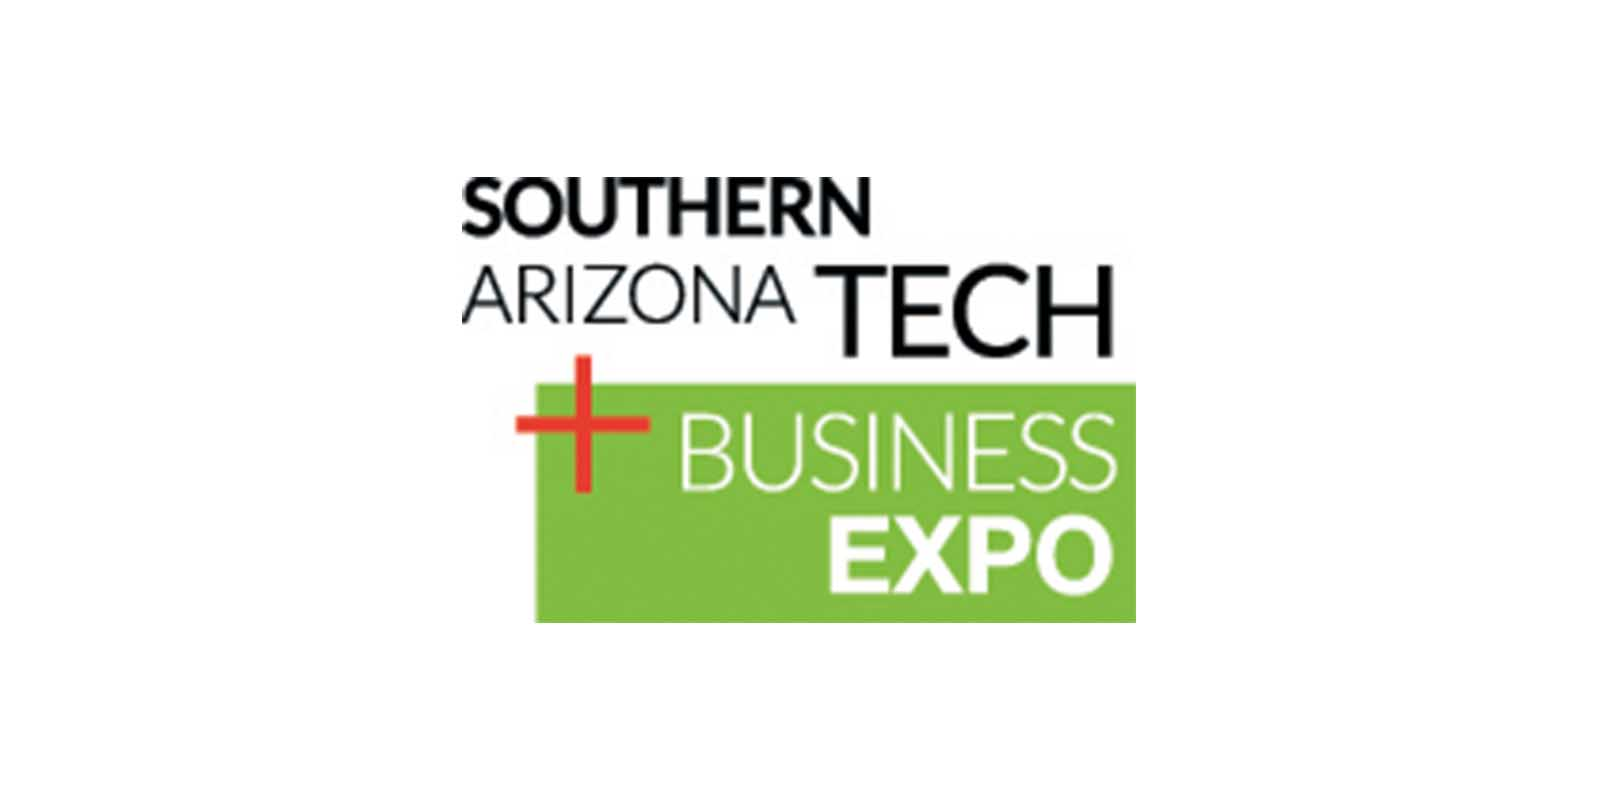 southern arizona tech business expo logo